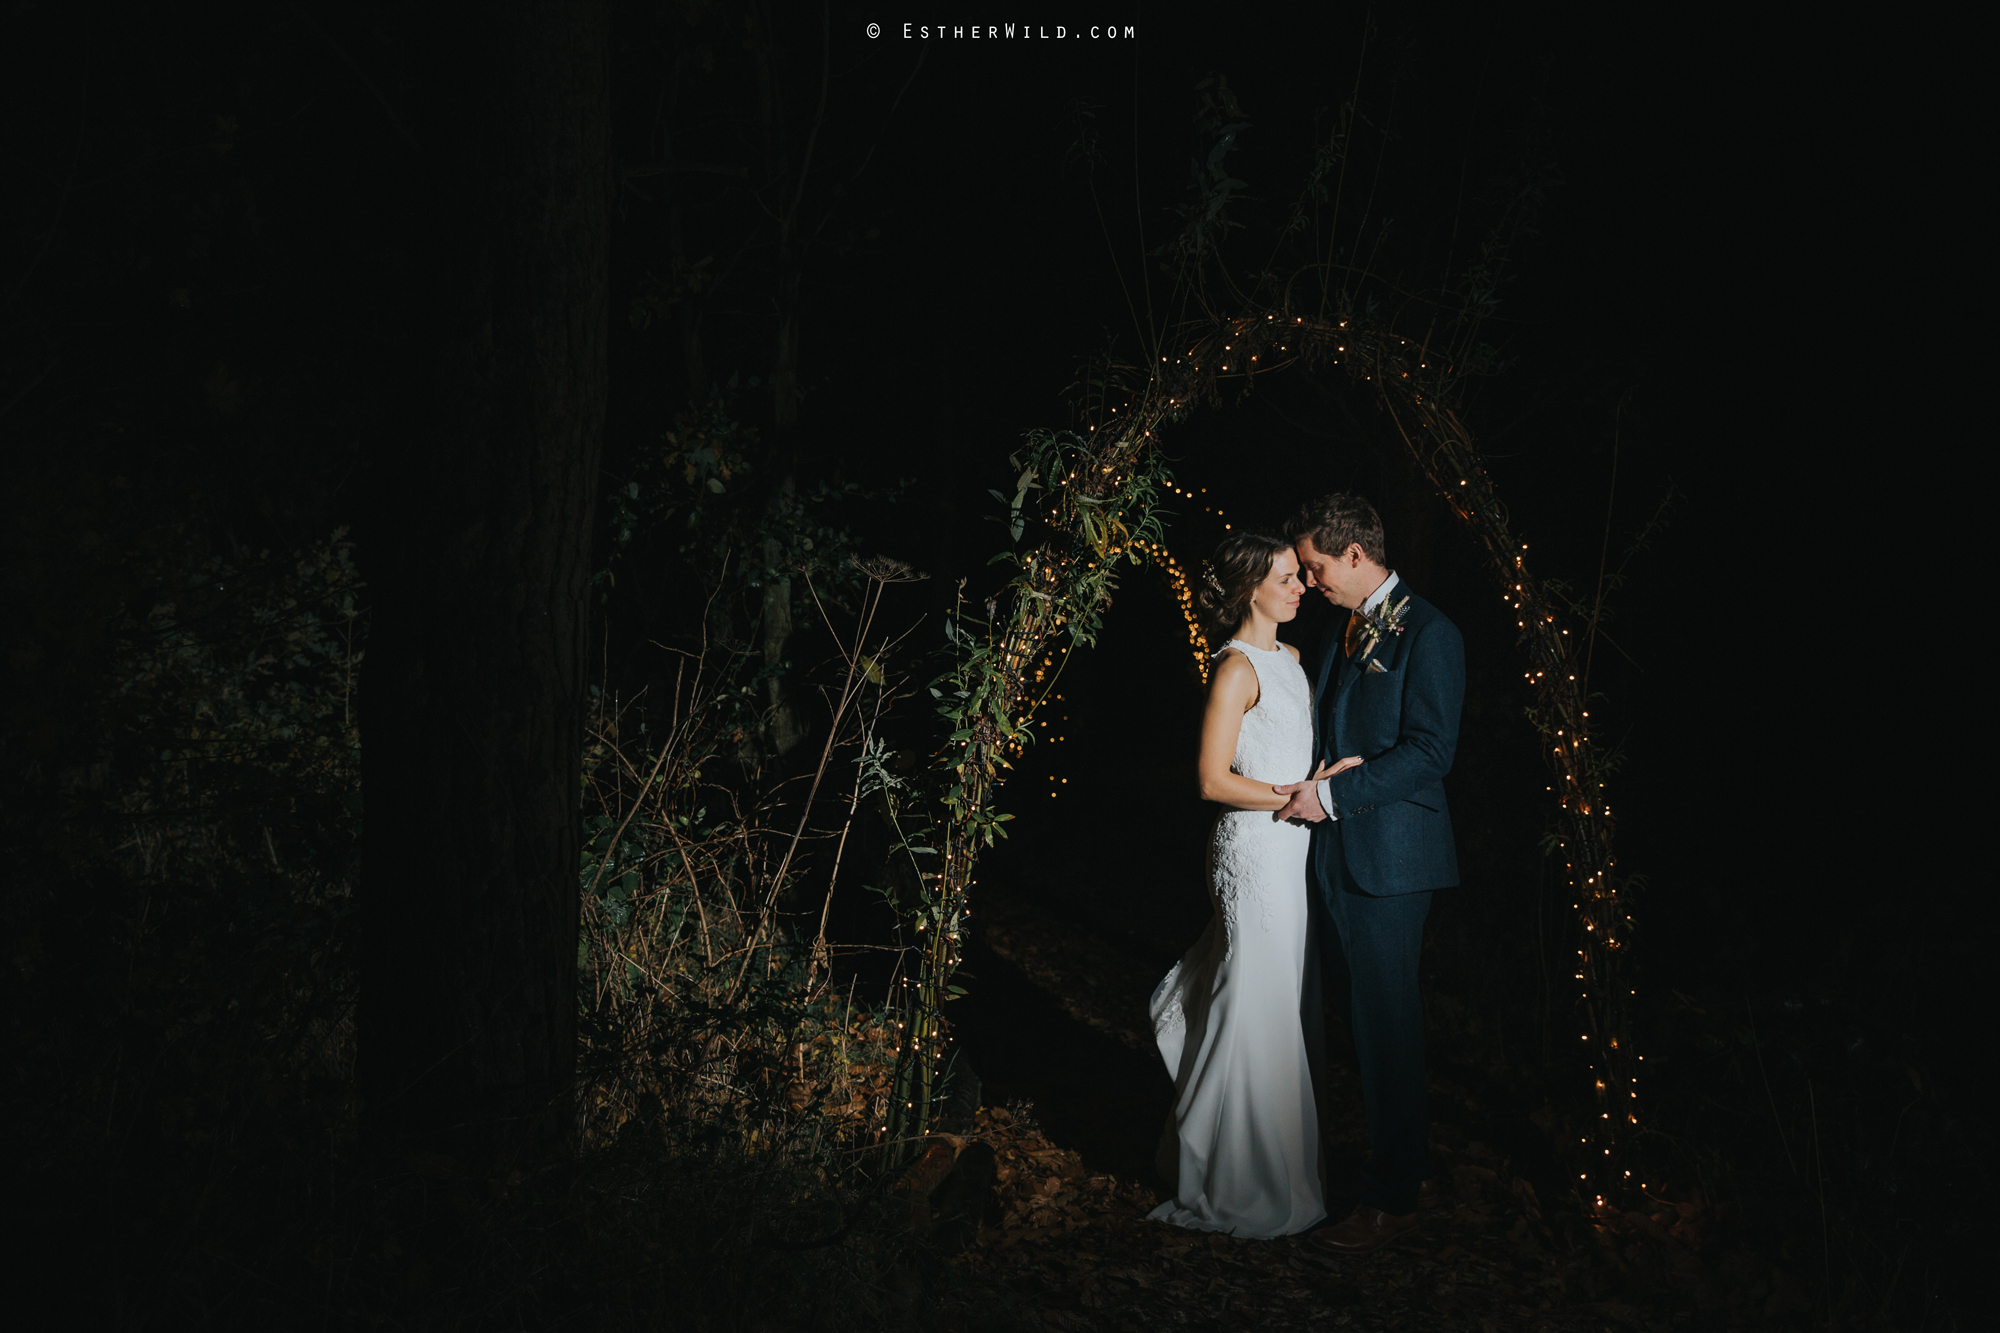 Wedding_Photographer_Chaucer_Barn_Holt_Norfolk_Country_Rustic_Venue_Copyright_Esther_Wild_IMG_2518.jpg